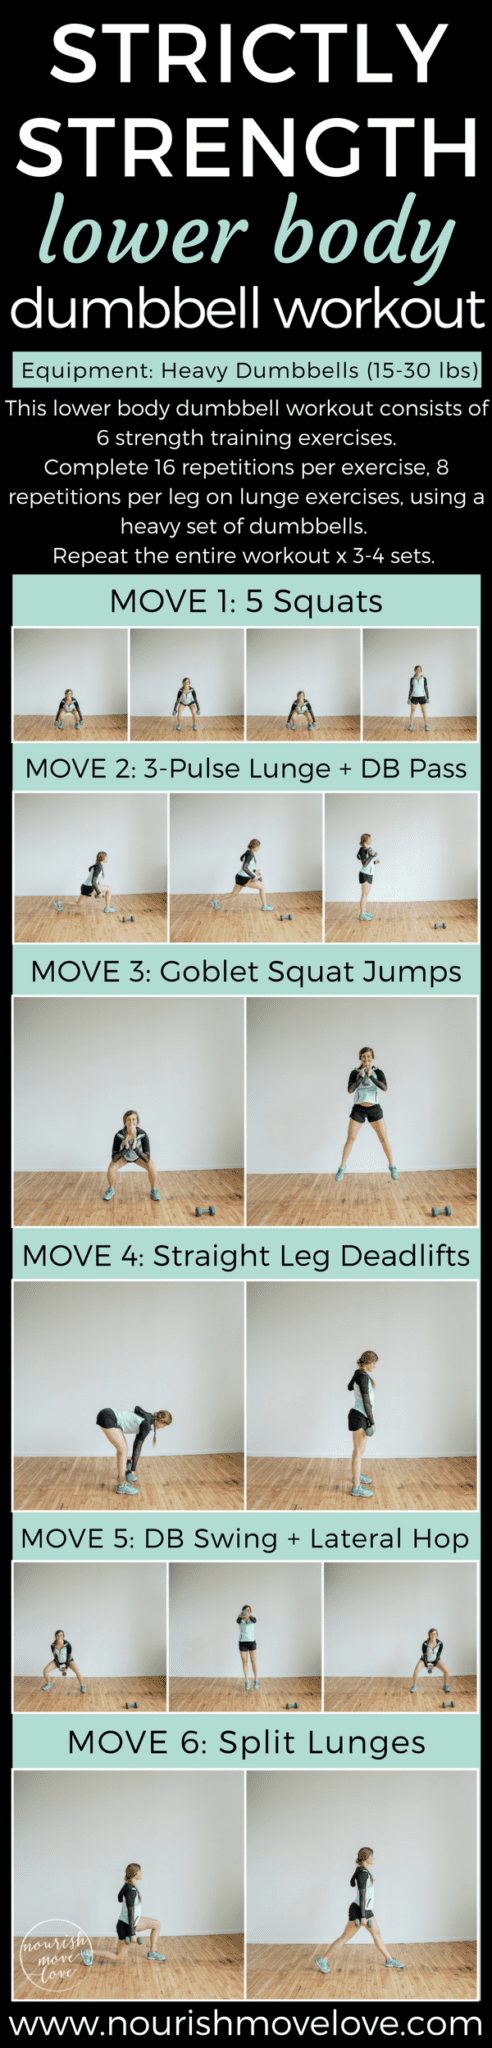 Pin This Strictly Strength Lower Body Dumbbell Workout